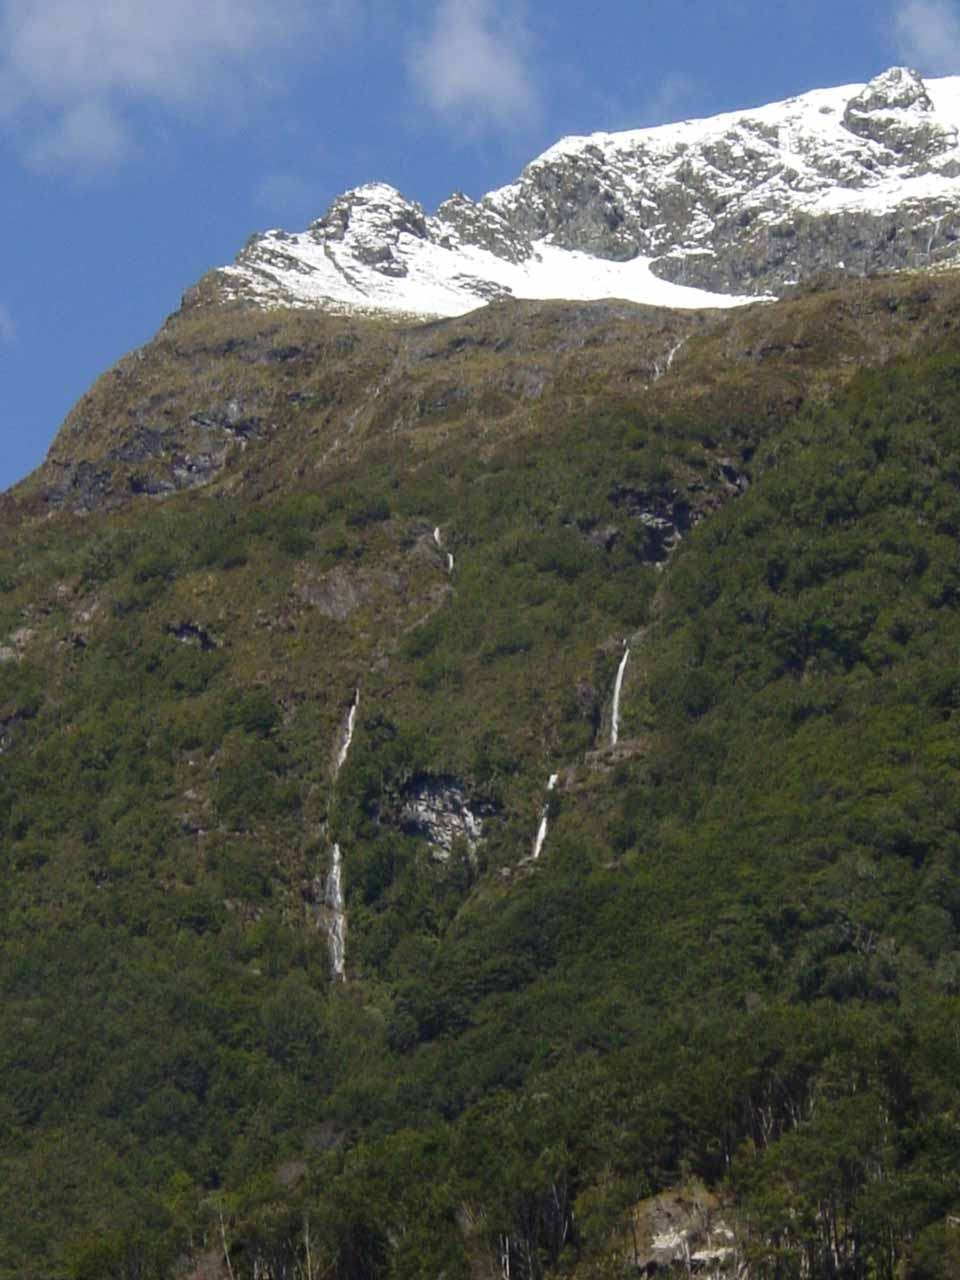 Looking up towards a pair of ephemeral waterfalls under some snowy mountains